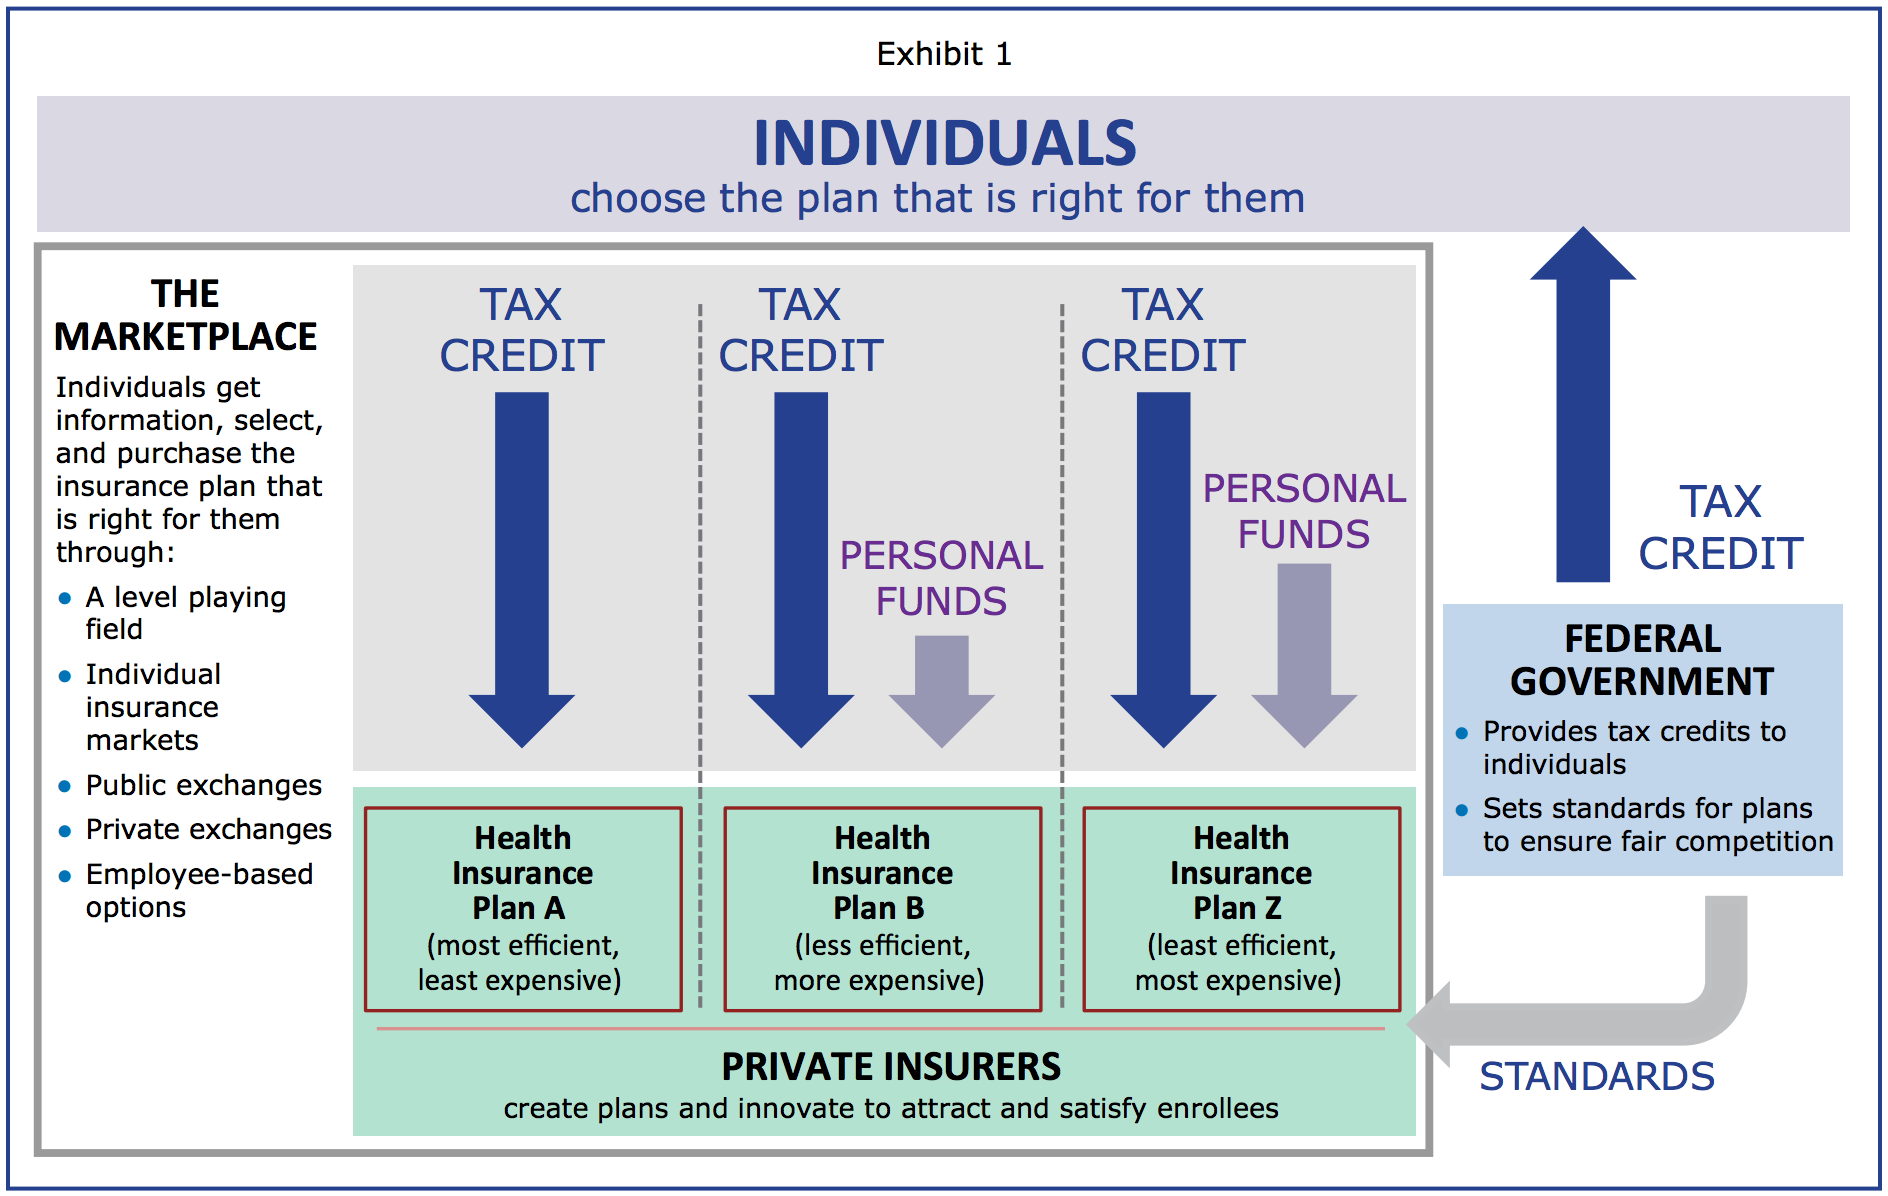 Exhibit 1: Individuals choose the plan that is right for them